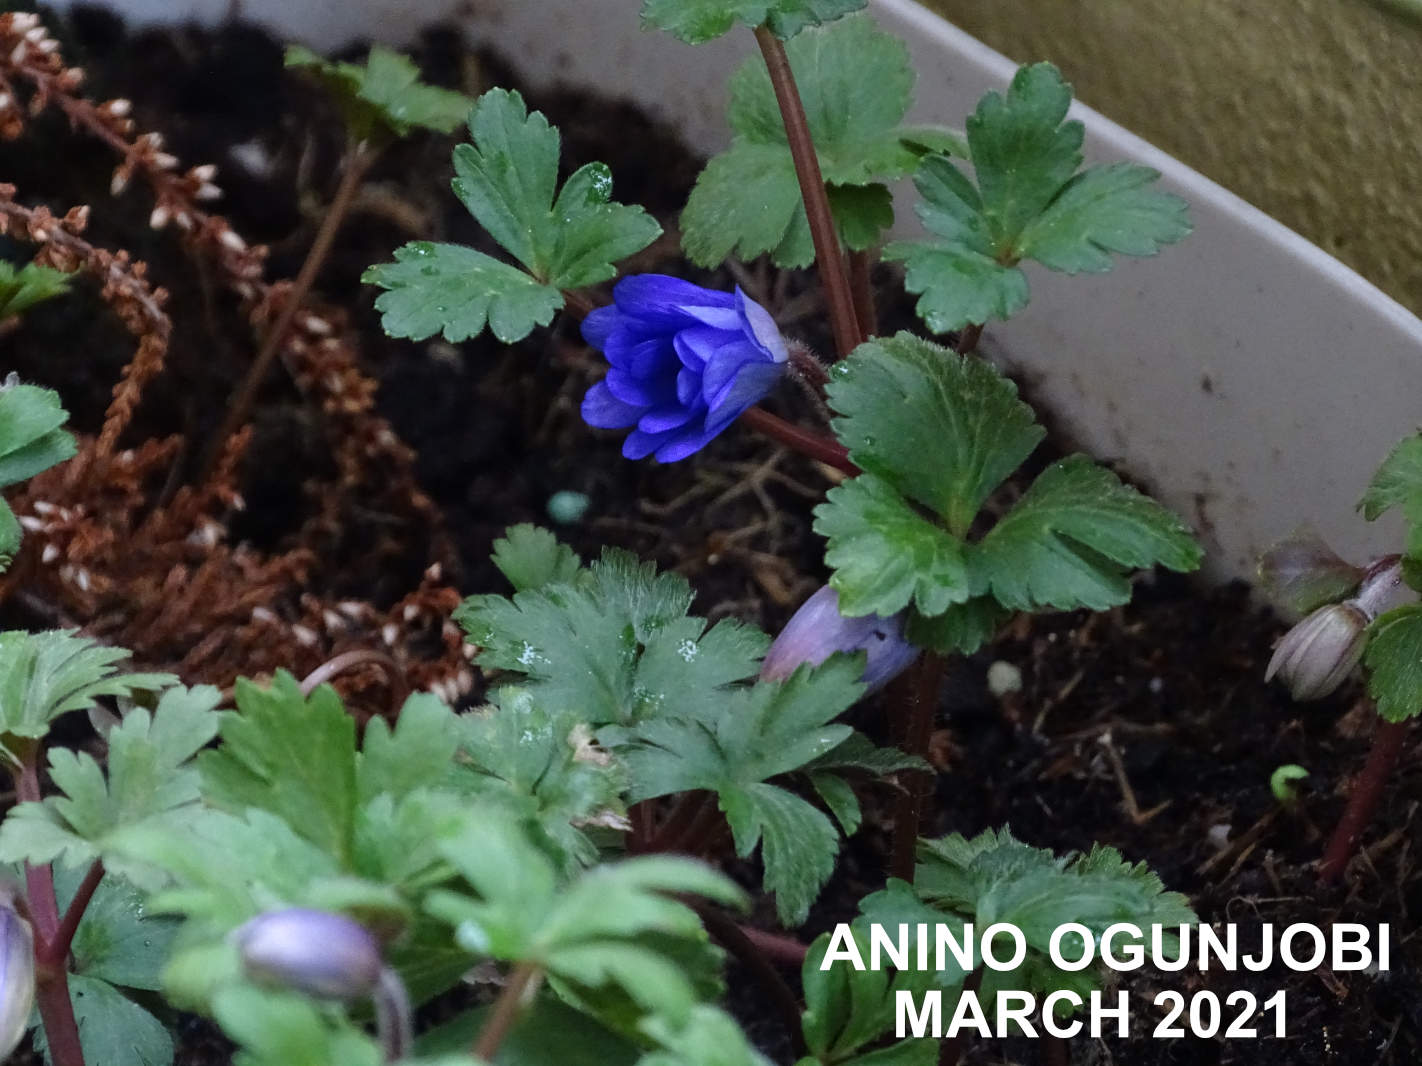 Anemone-blanda-mix-in-bloom-by-Anino-Ogunjobi-and-Crafters-TV